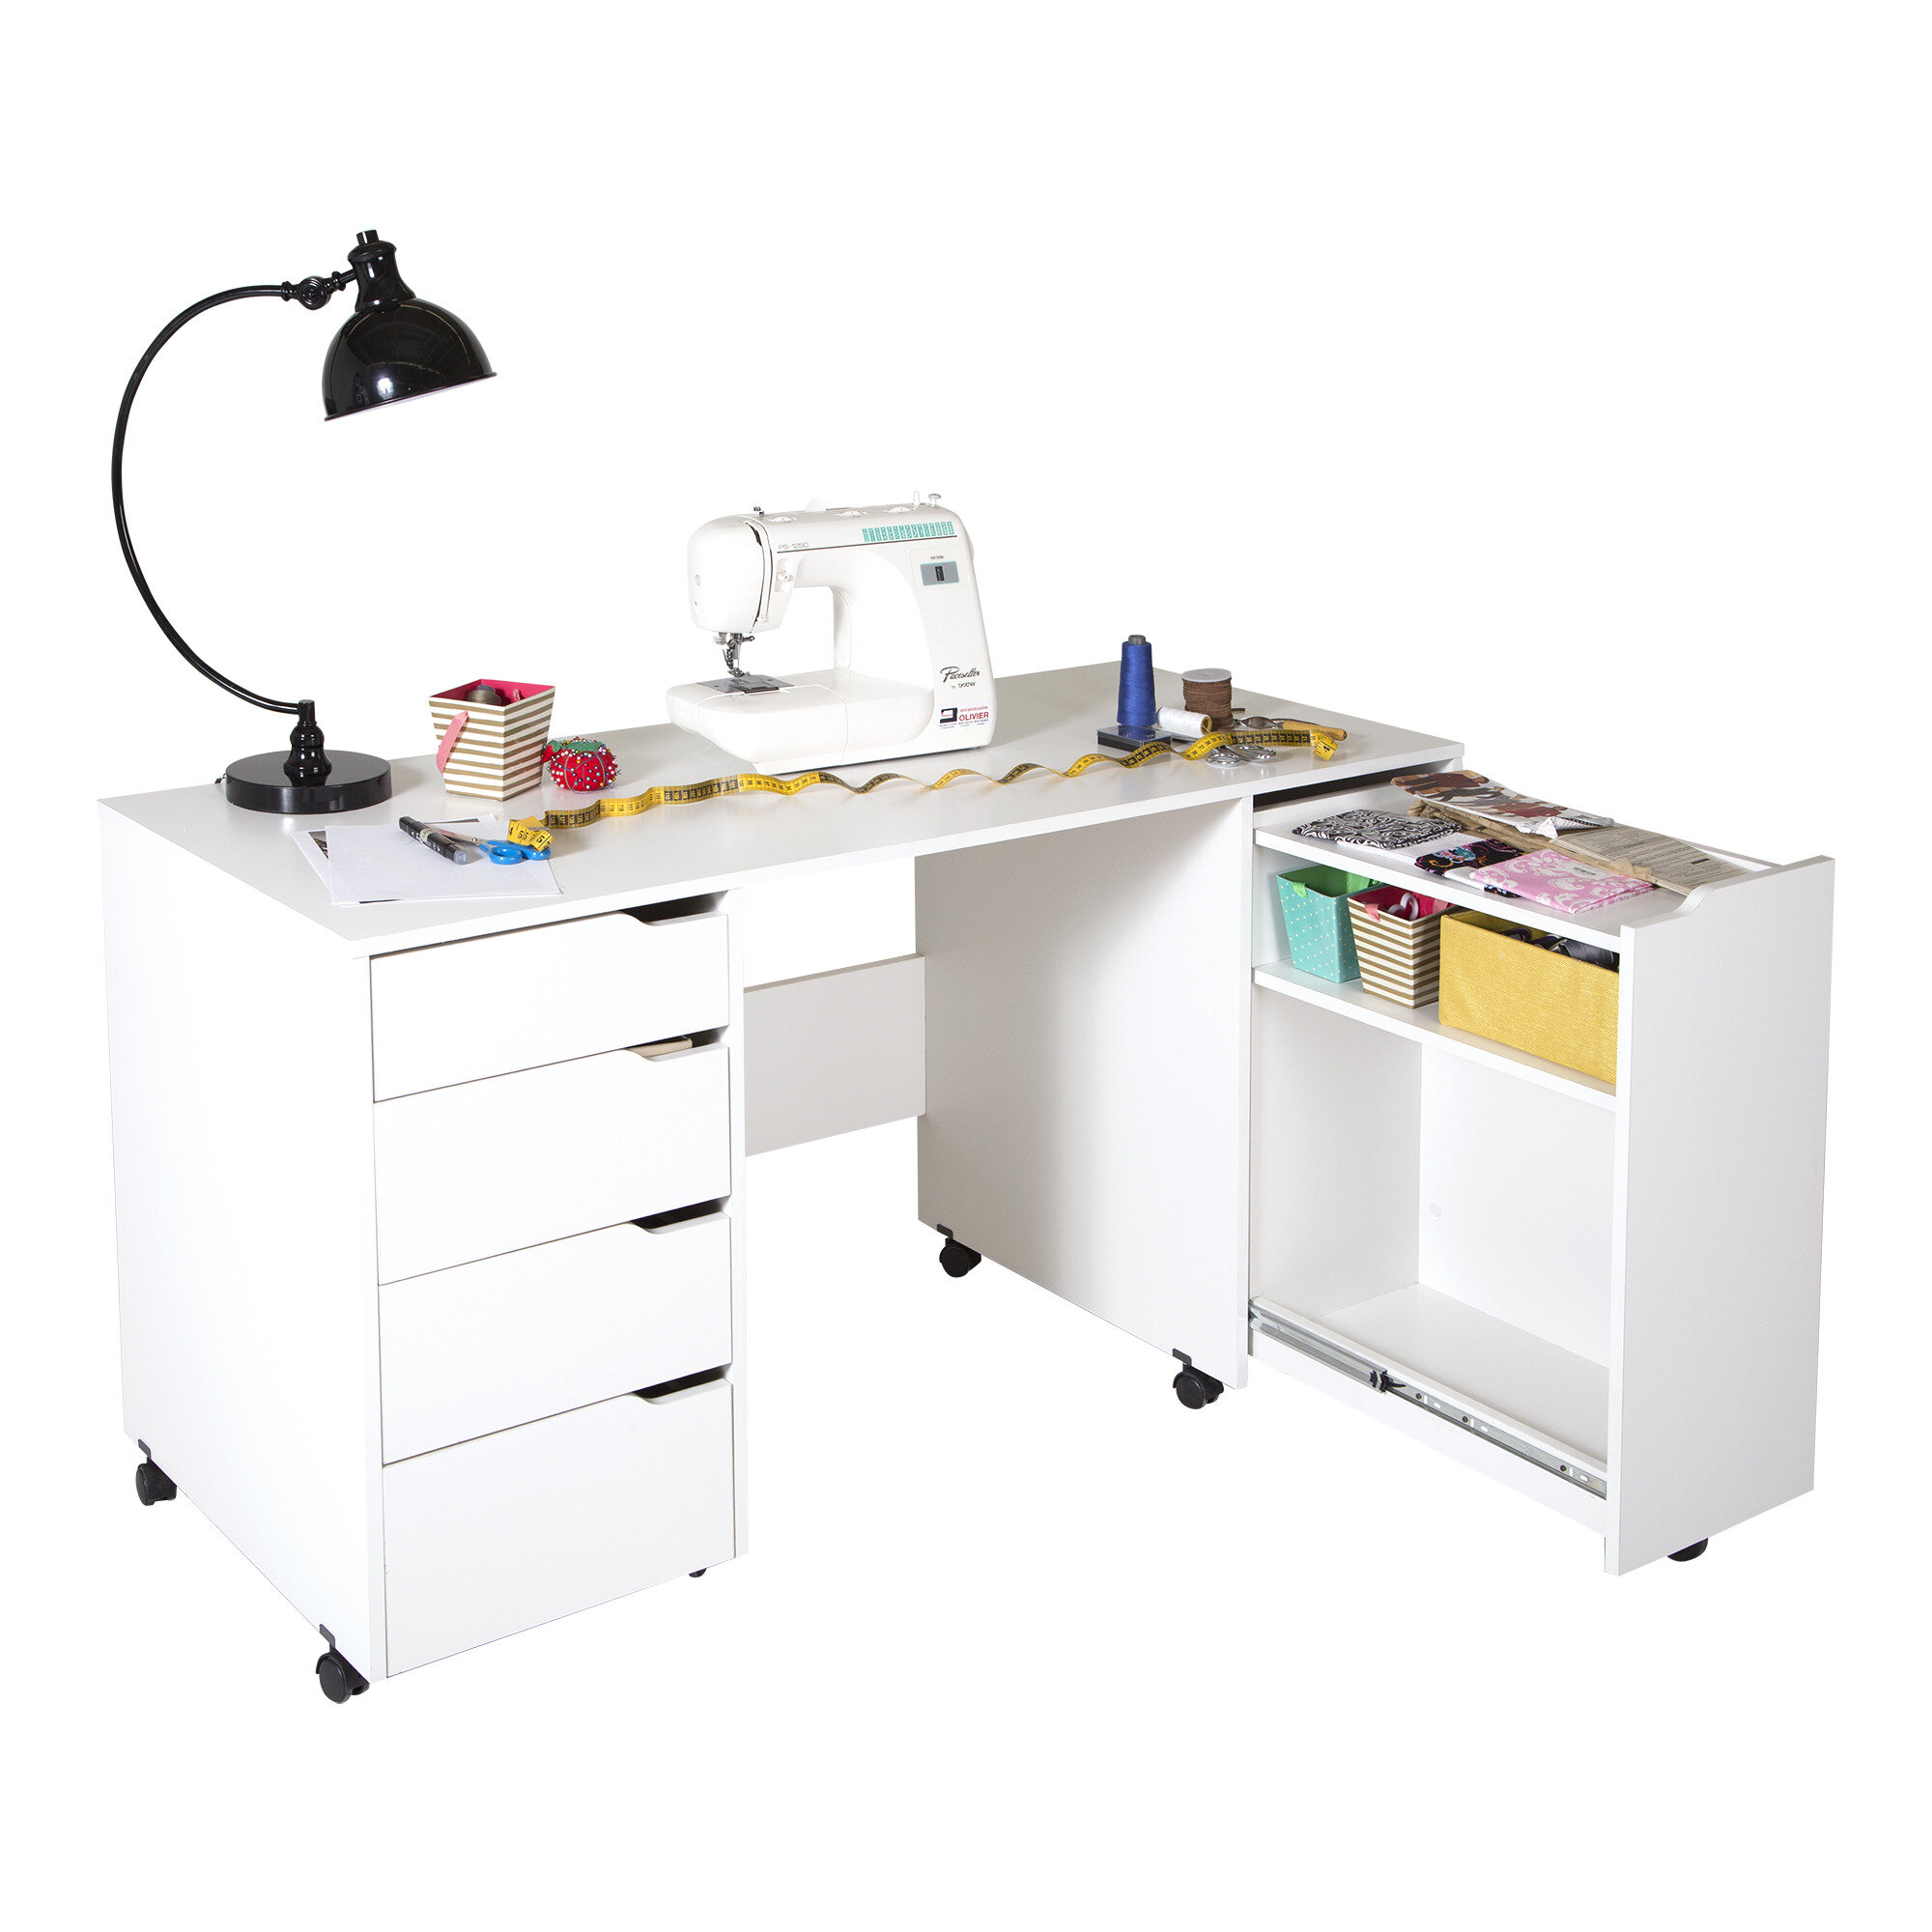 Crea+Sewing+Craft+Table